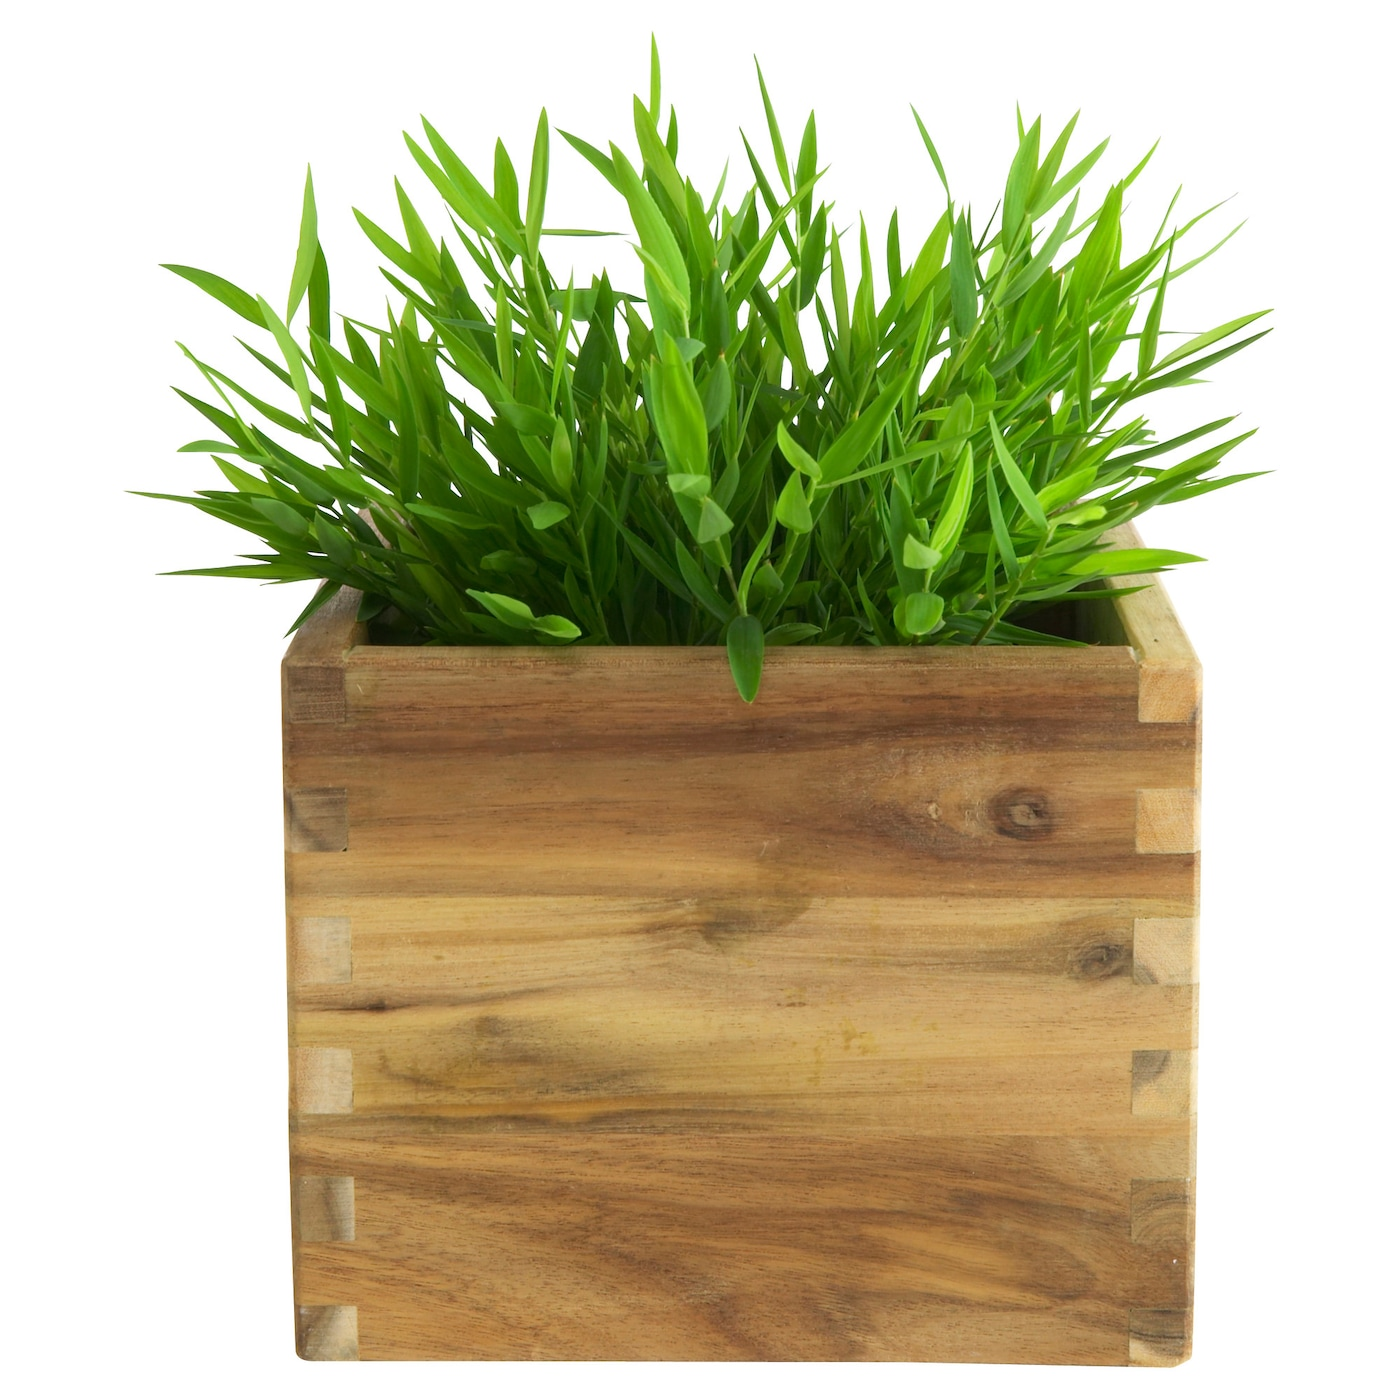 Fejka artificial potted plant house bamboo 10 cm ikea - Ikea plantas artificiales ...